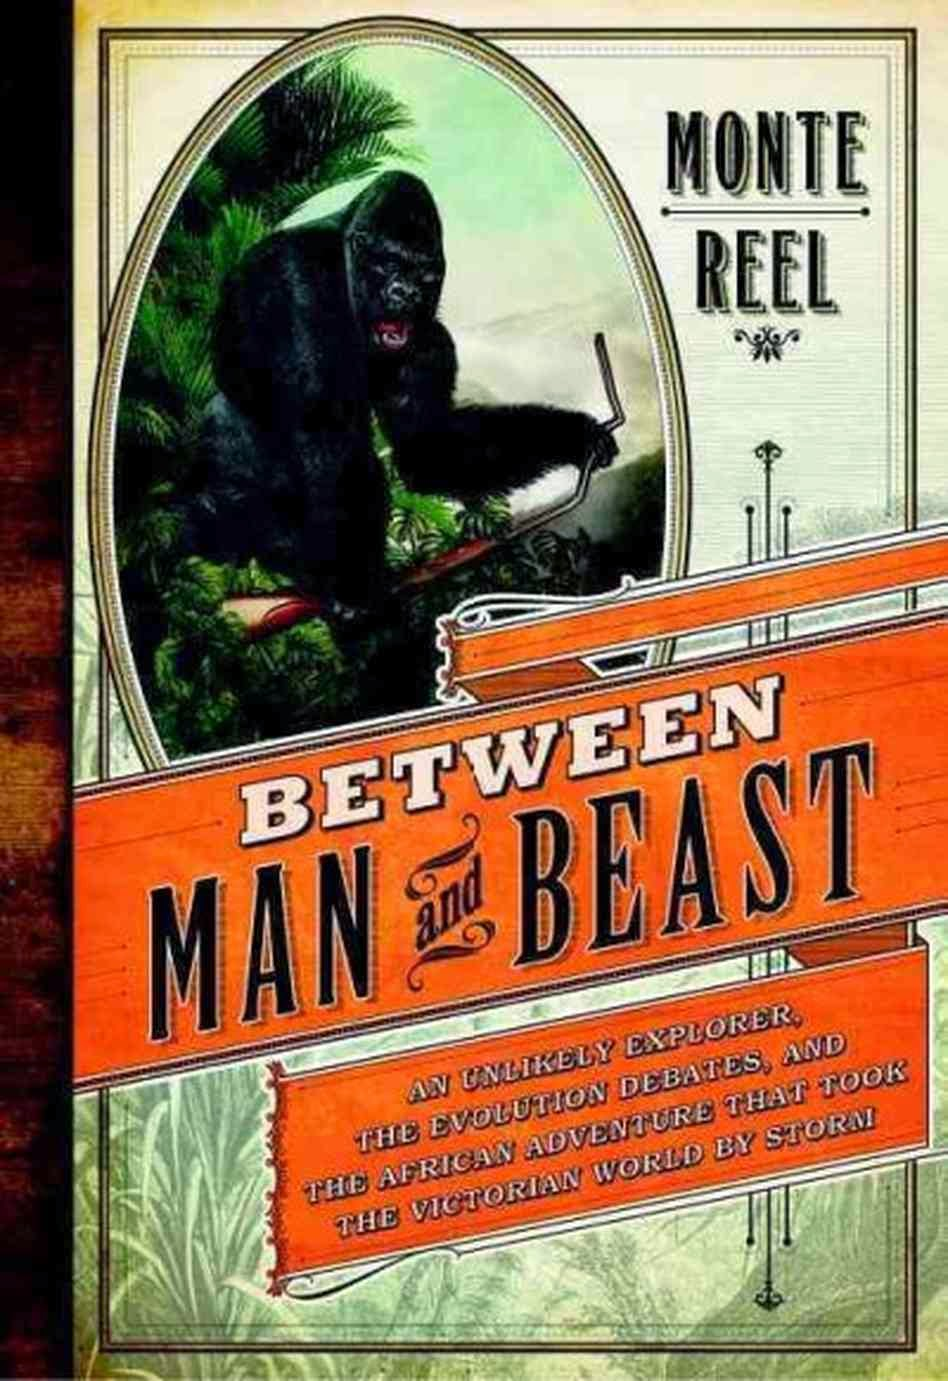 http://discover.halifaxpubliclibraries.ca/?q=title:%22between%20man%20and%20beast%22reel